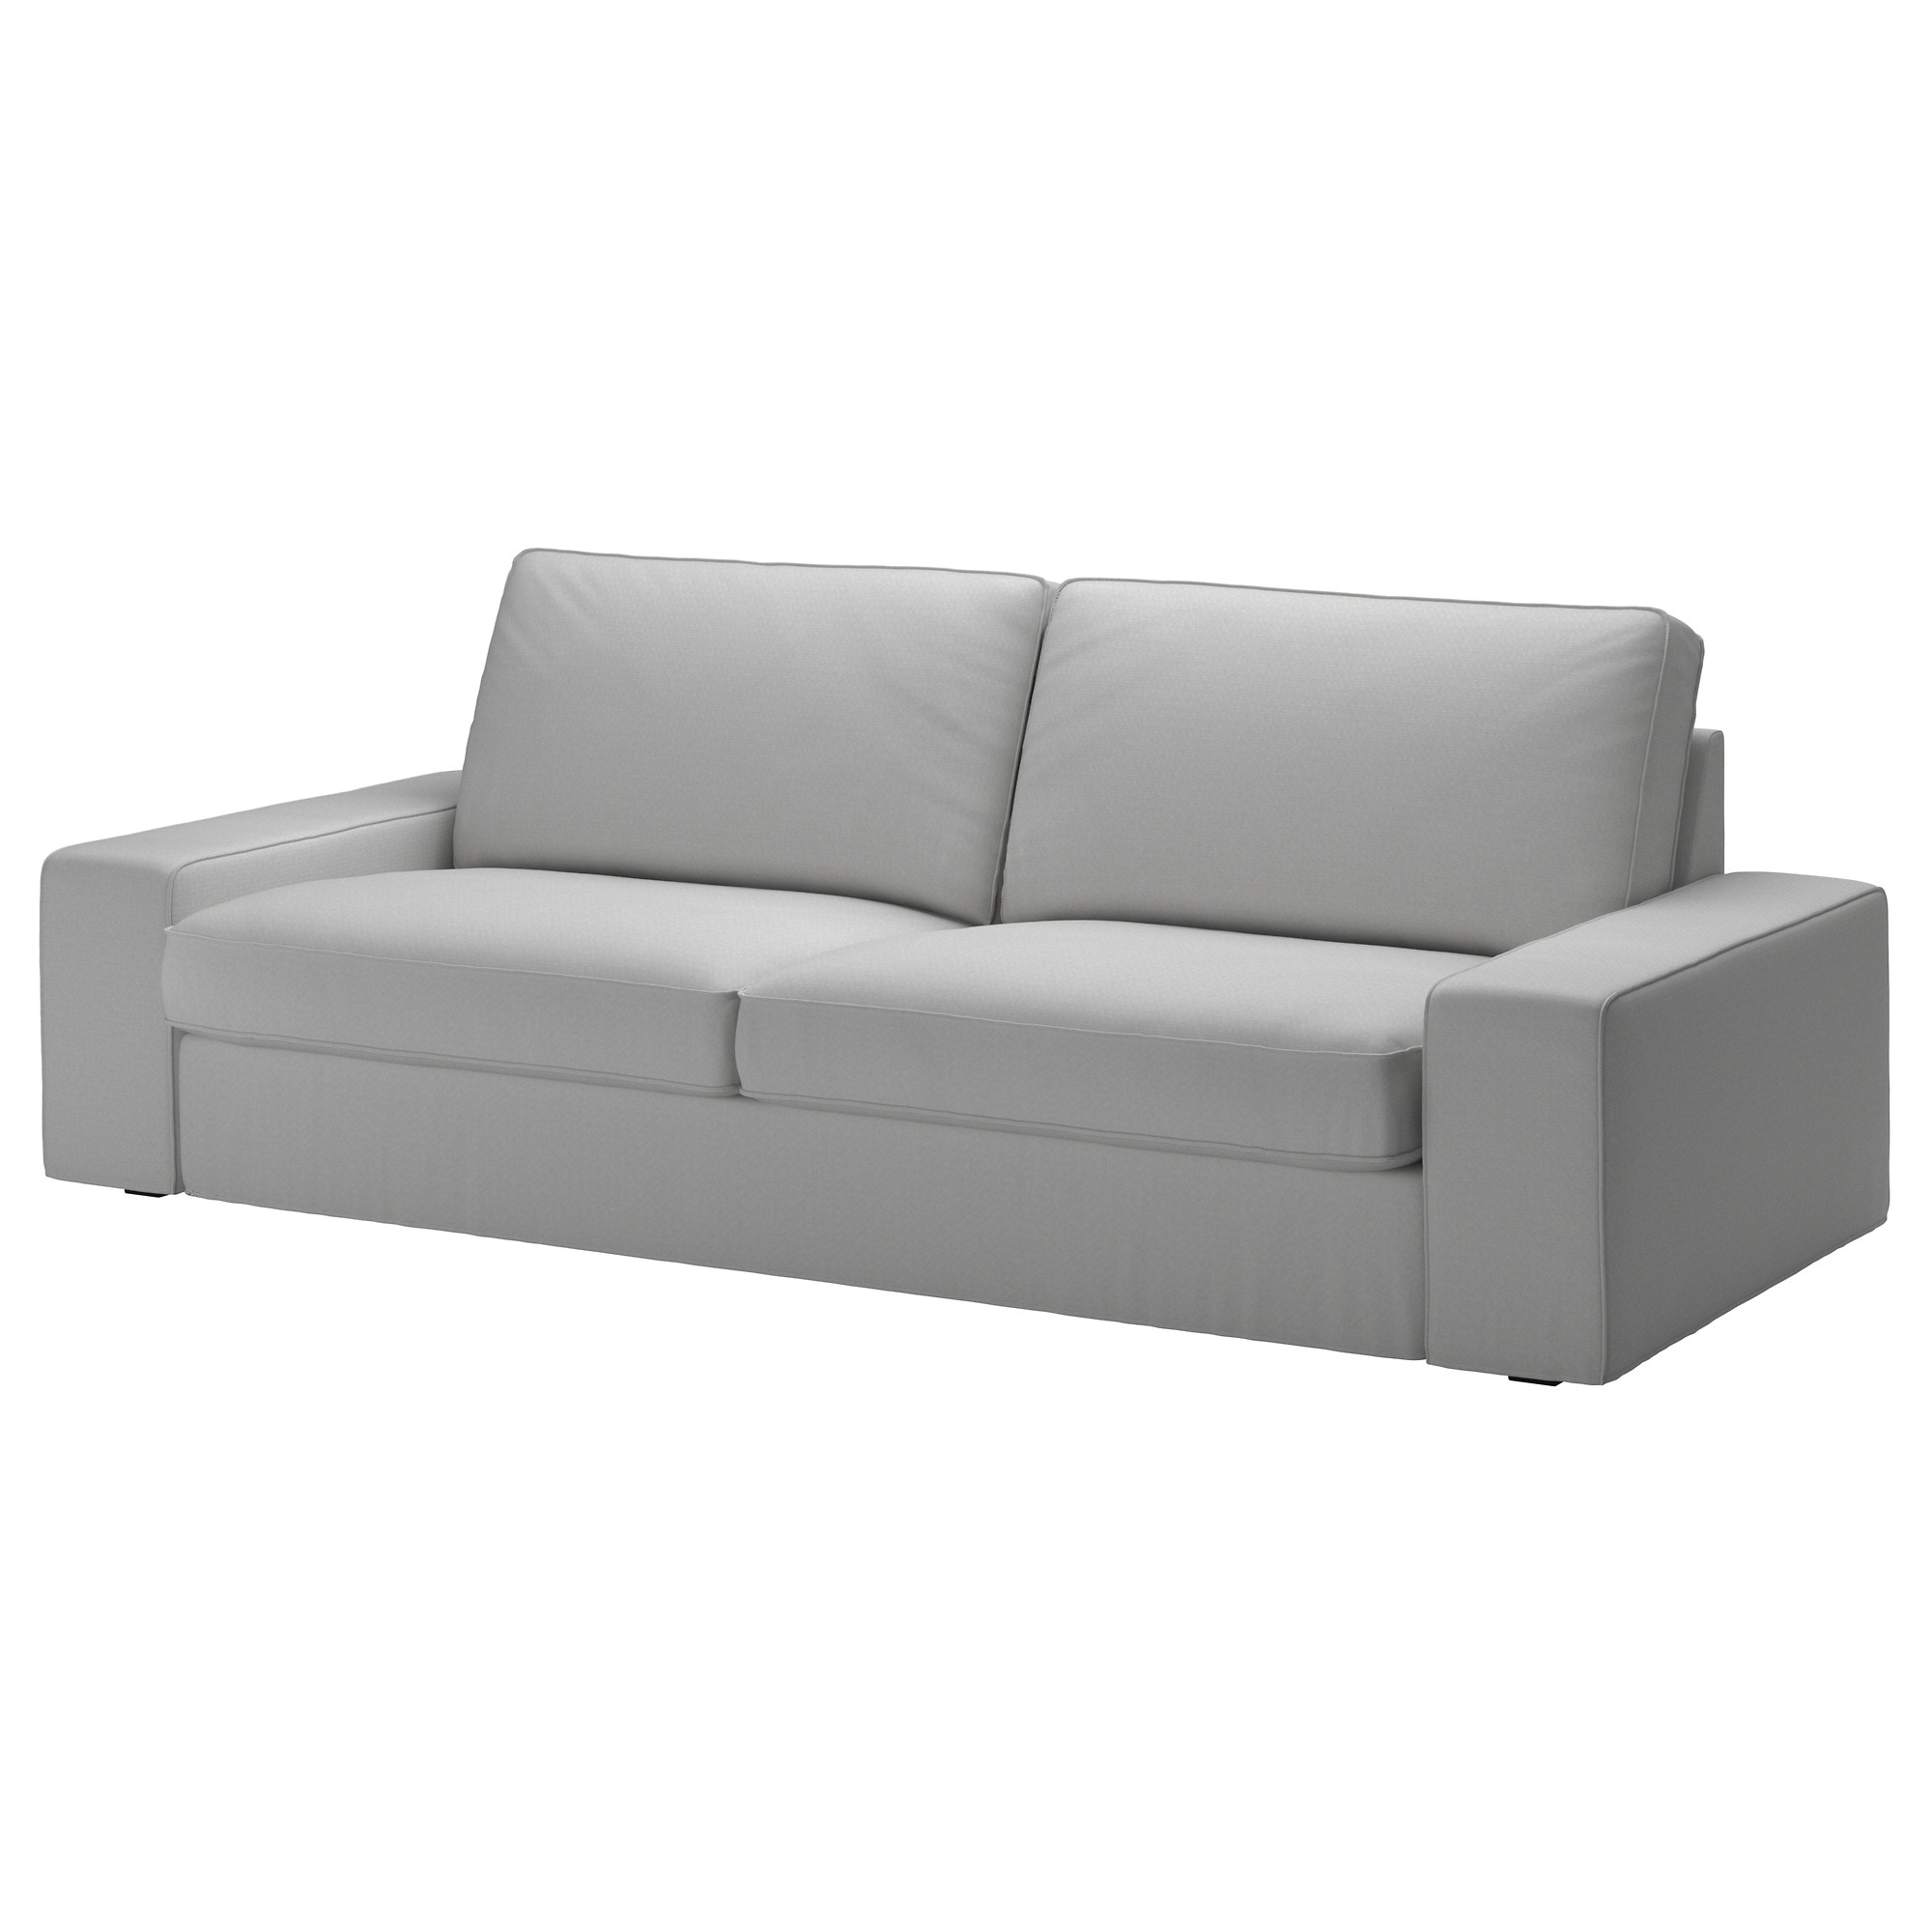 ikea sofa KIVIK Sofa   Orrsta light gray   IKEA ikea sofa